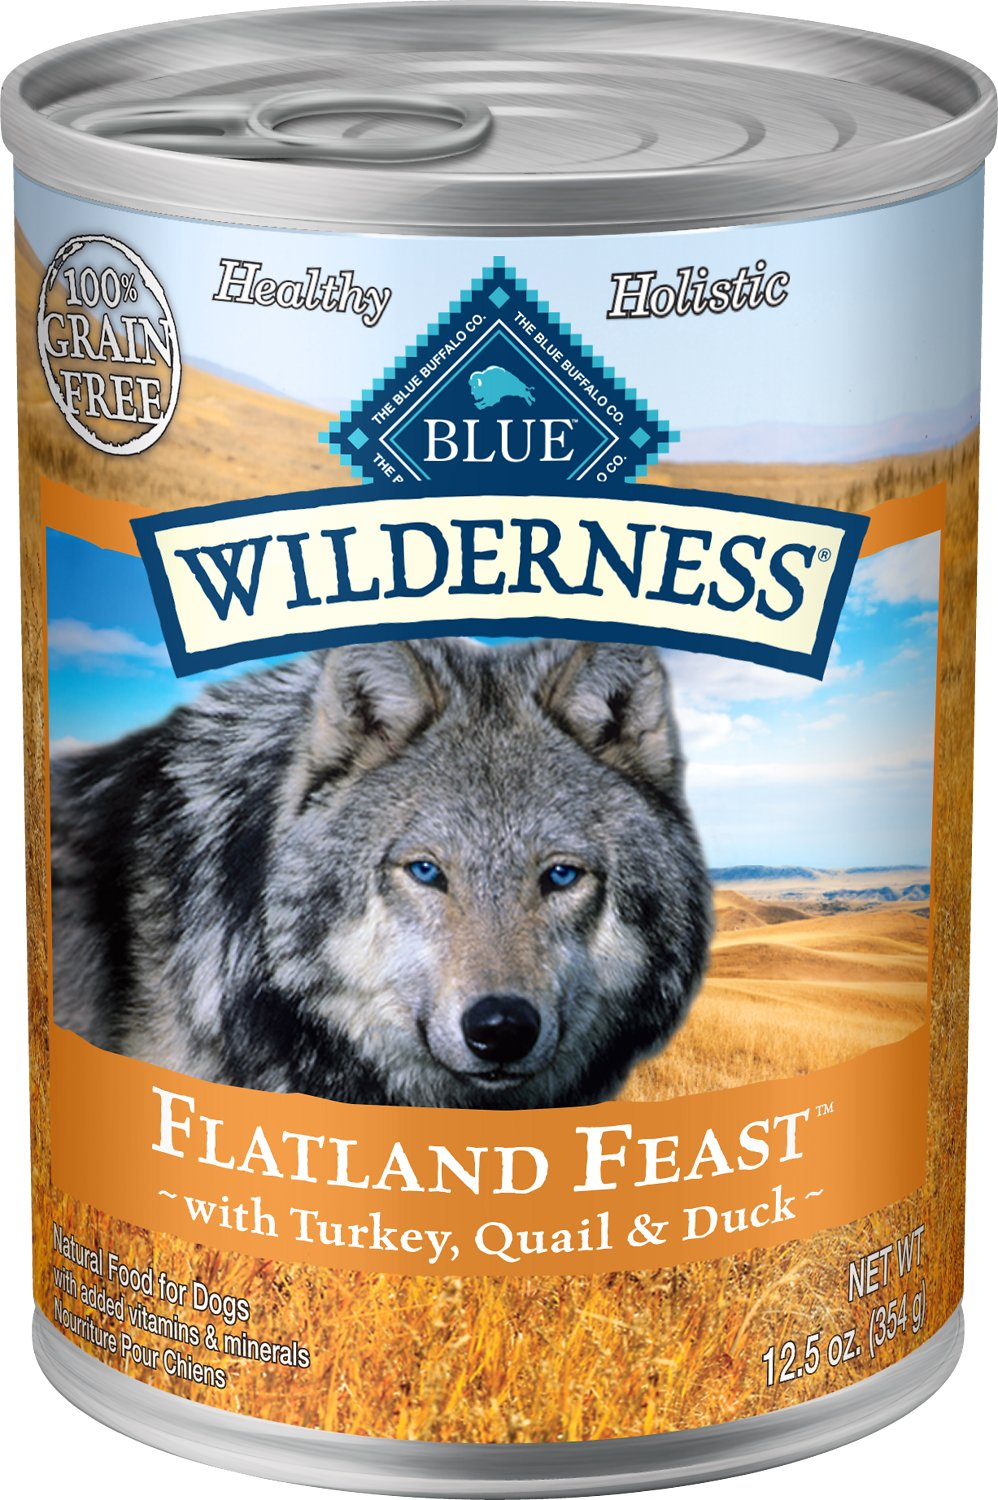 Blue Buffalo Wilderness Flatland Feast Turkey, Quail & Duck Formula Grain-Free Canned Dog Food, 12.5-oz